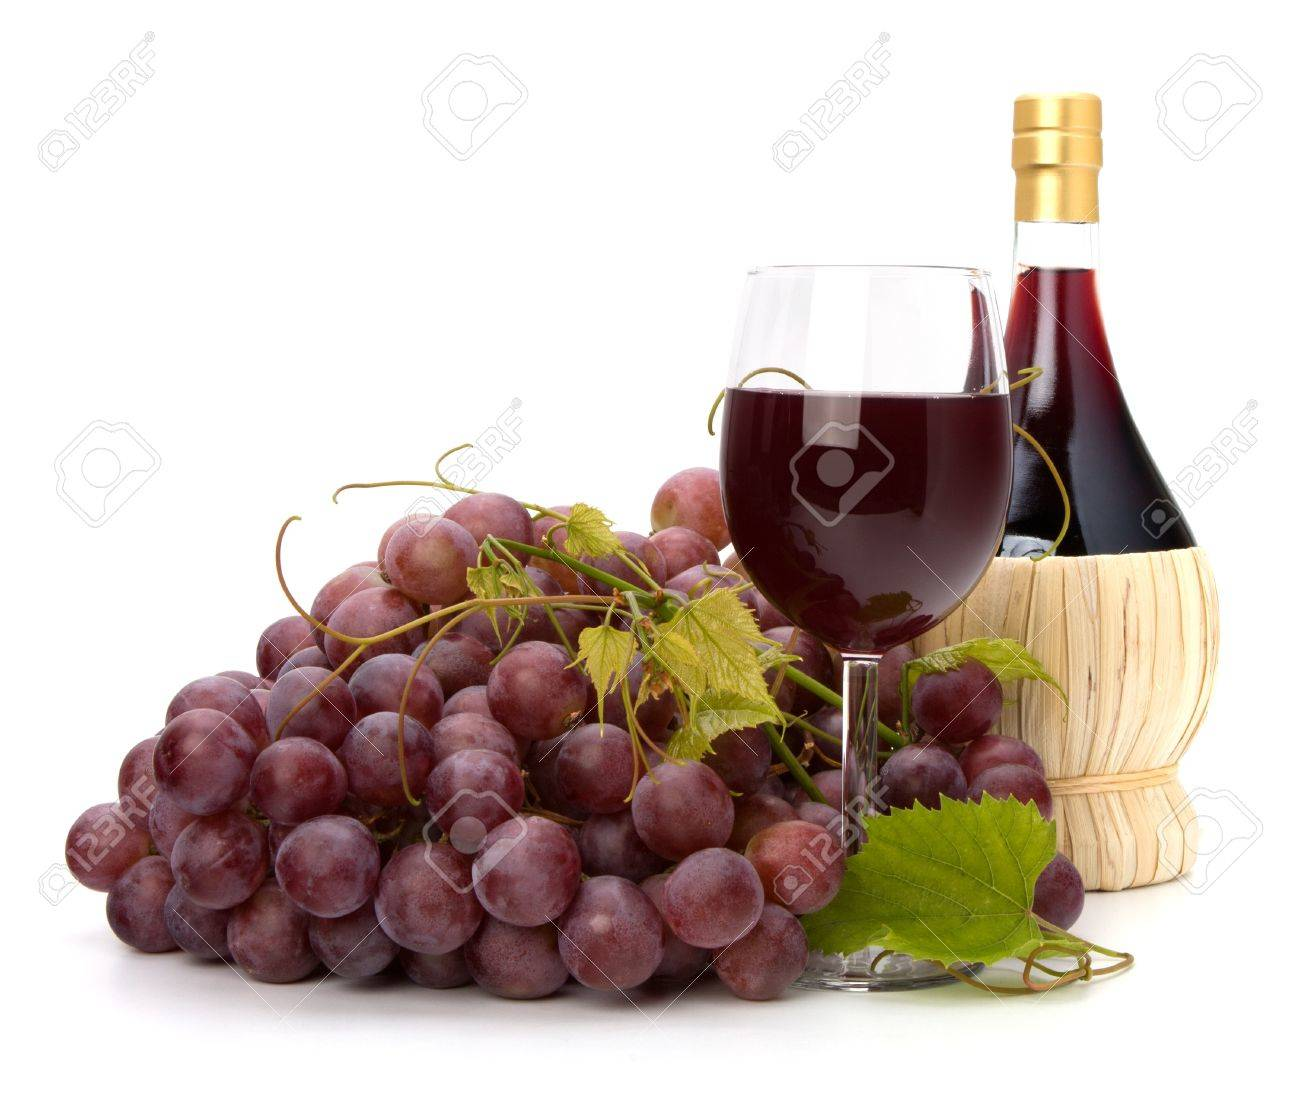 red wine glass, bottle and grape isolated on white background Stock Photo - 8527227